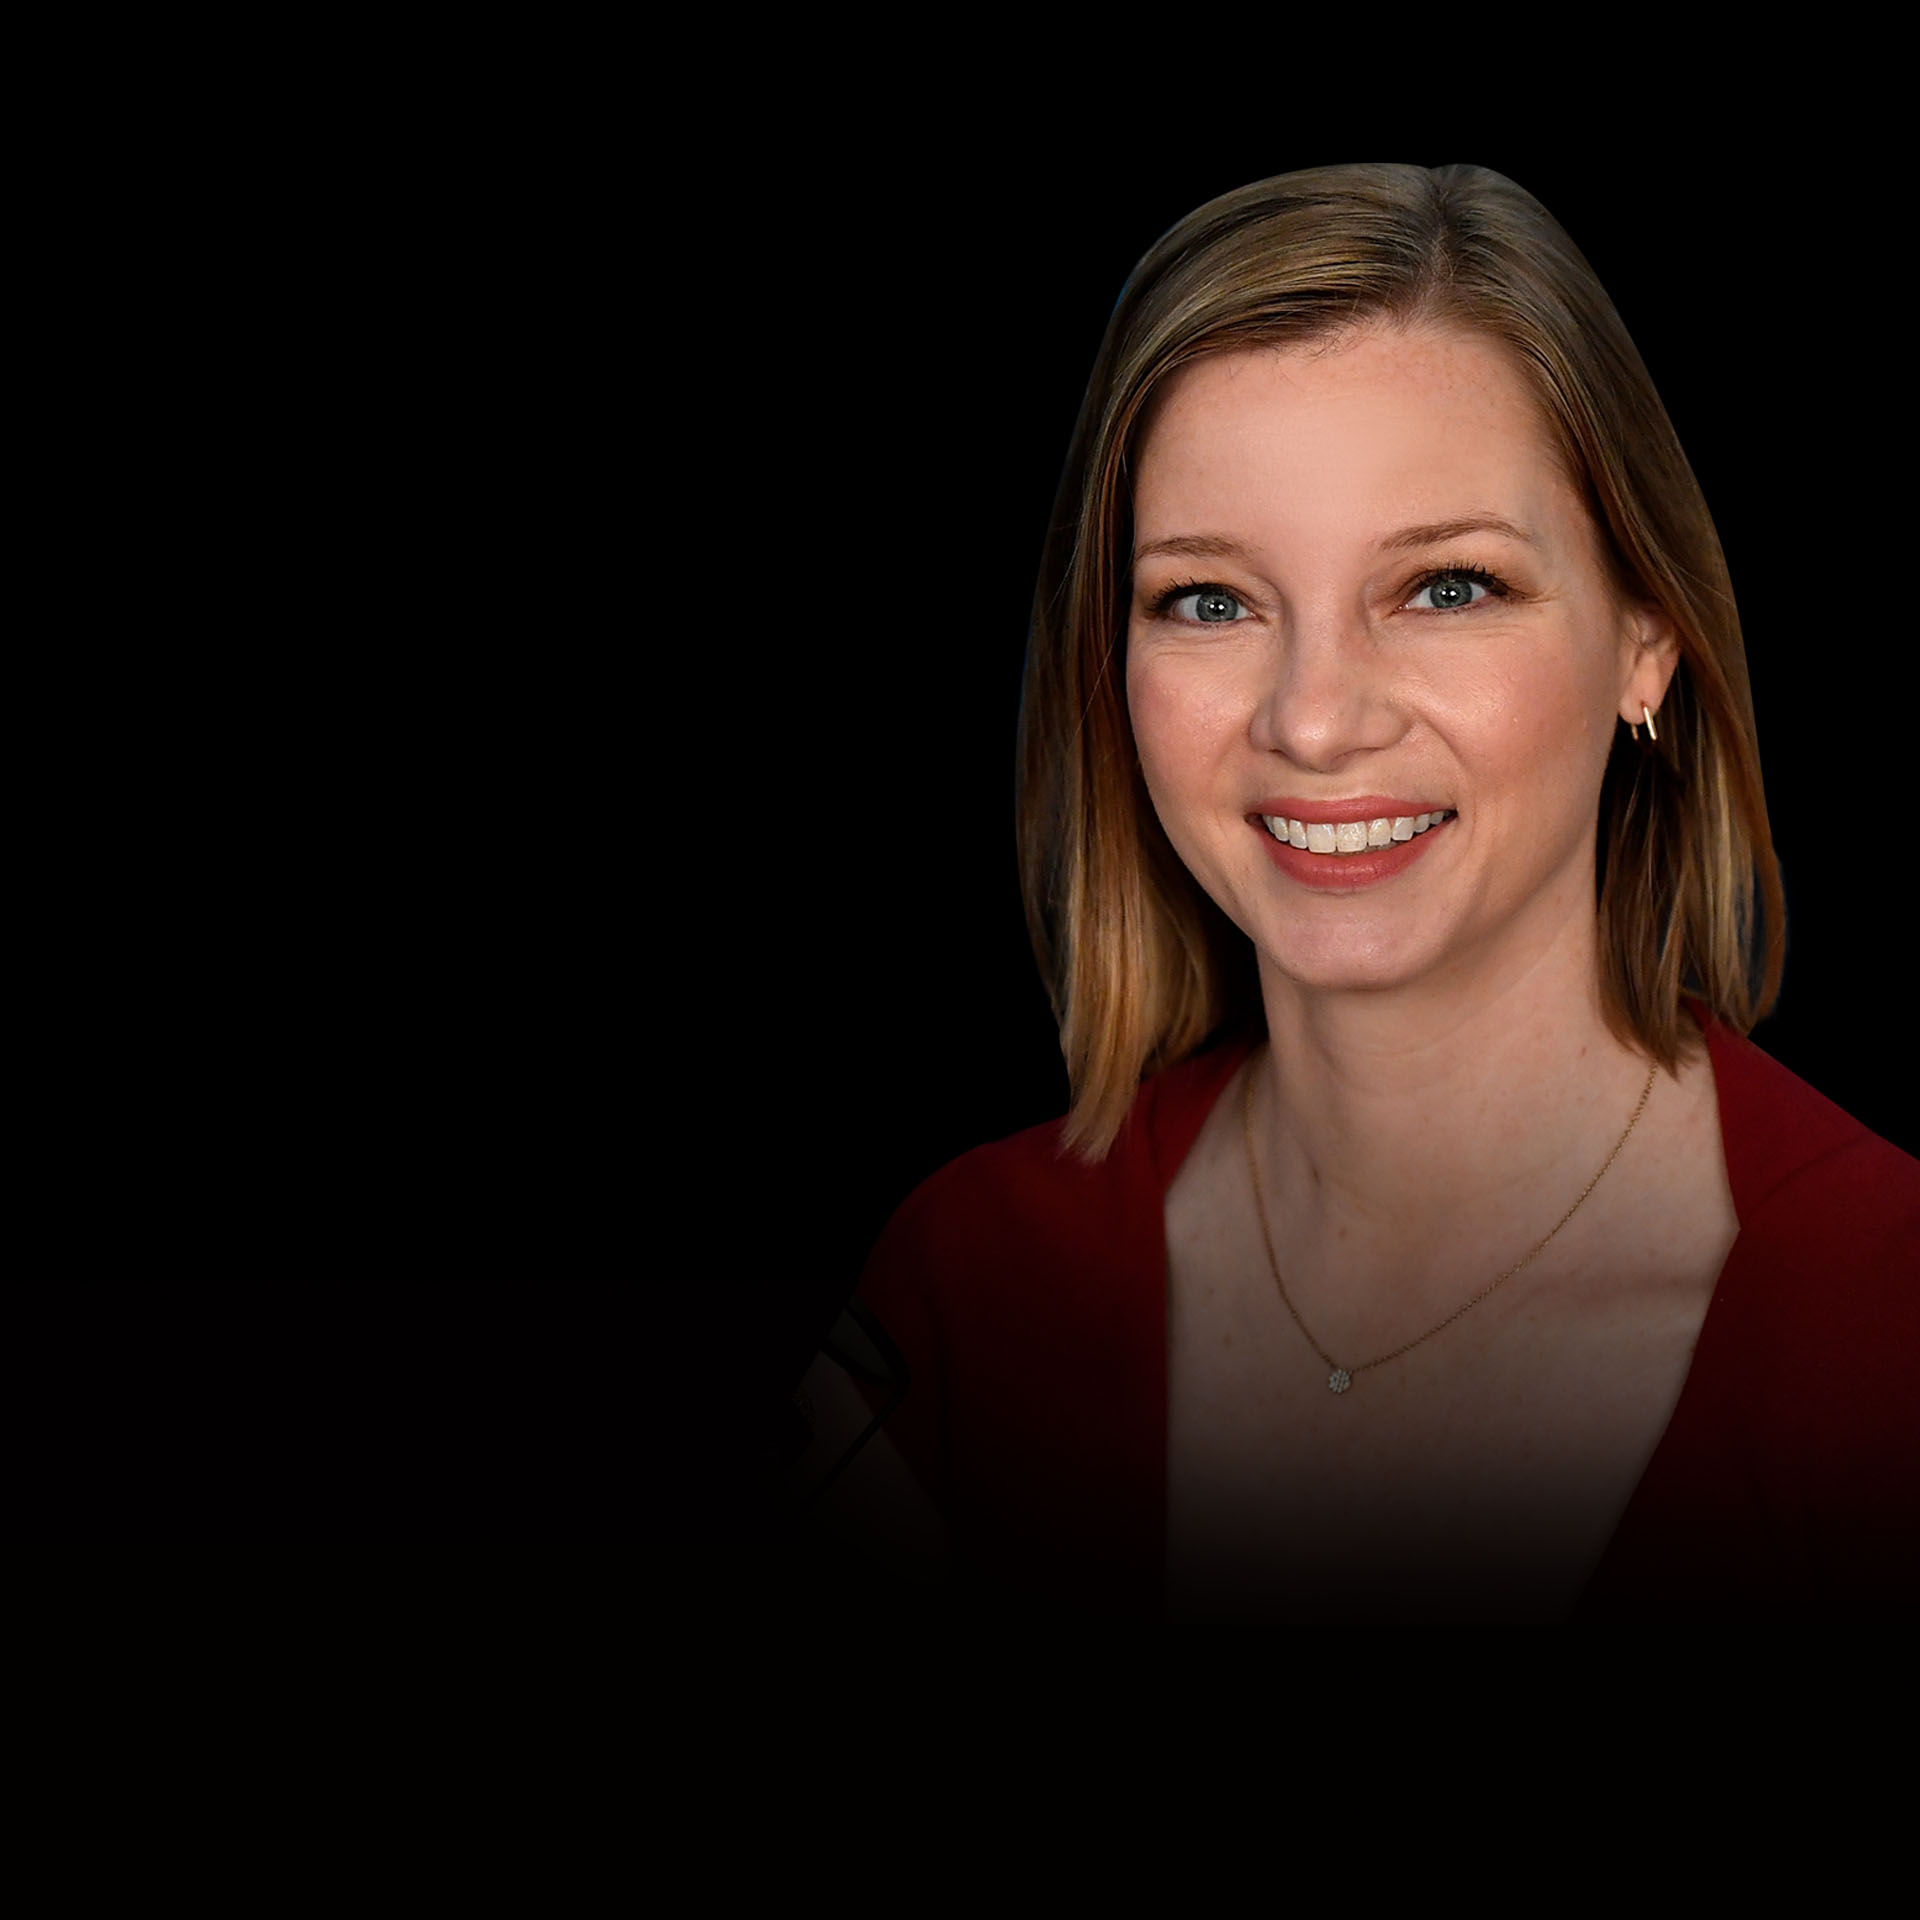 The Trendline with Kristen Soltis Anderson